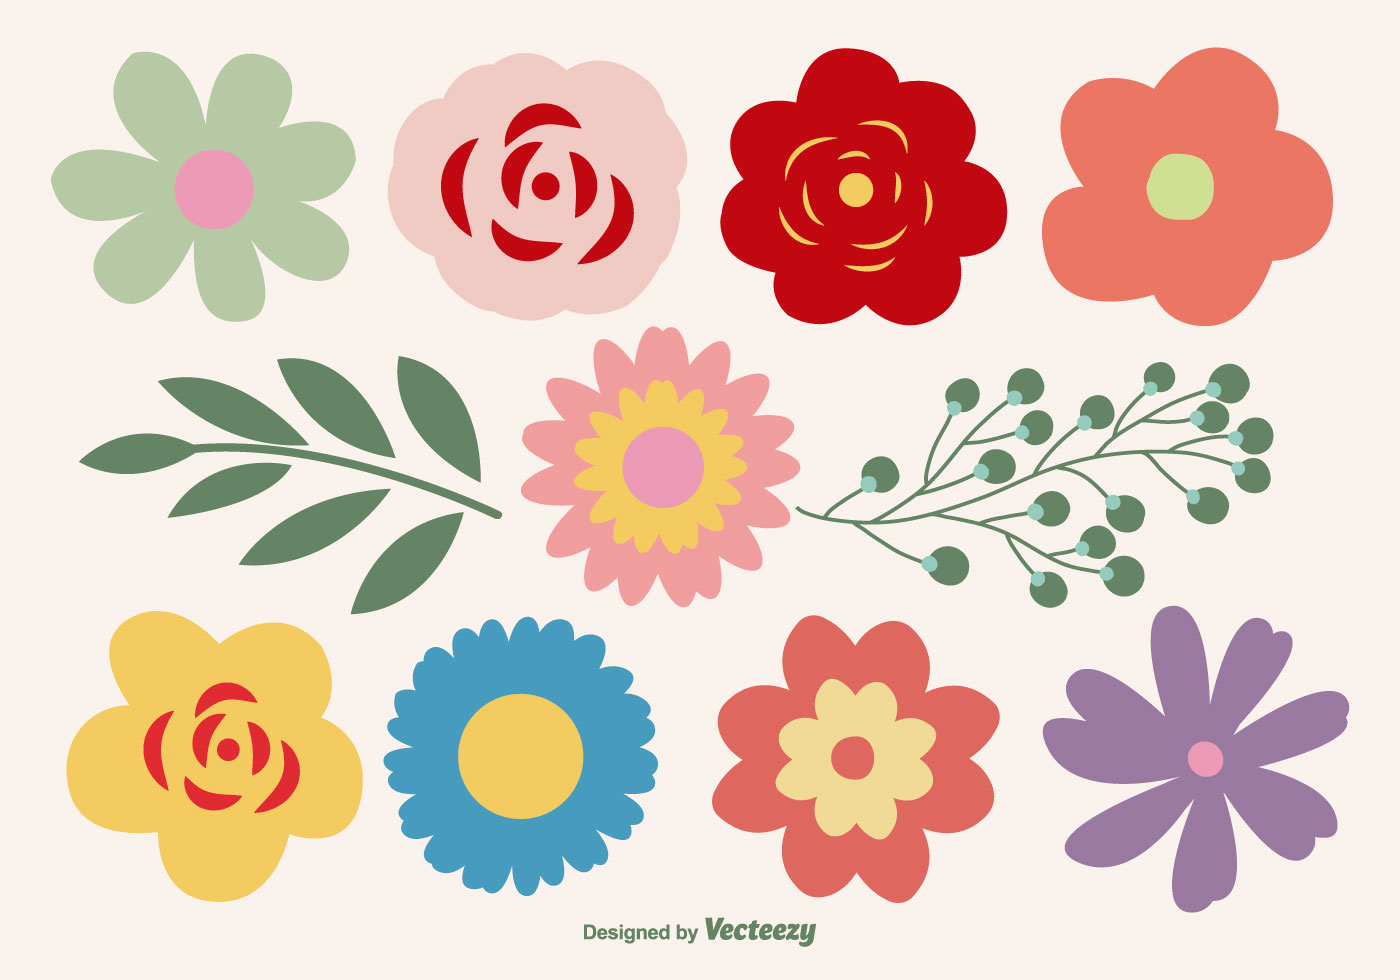 Cute Flower Shapes Set Download Free Vector Art Stock Graphics Images